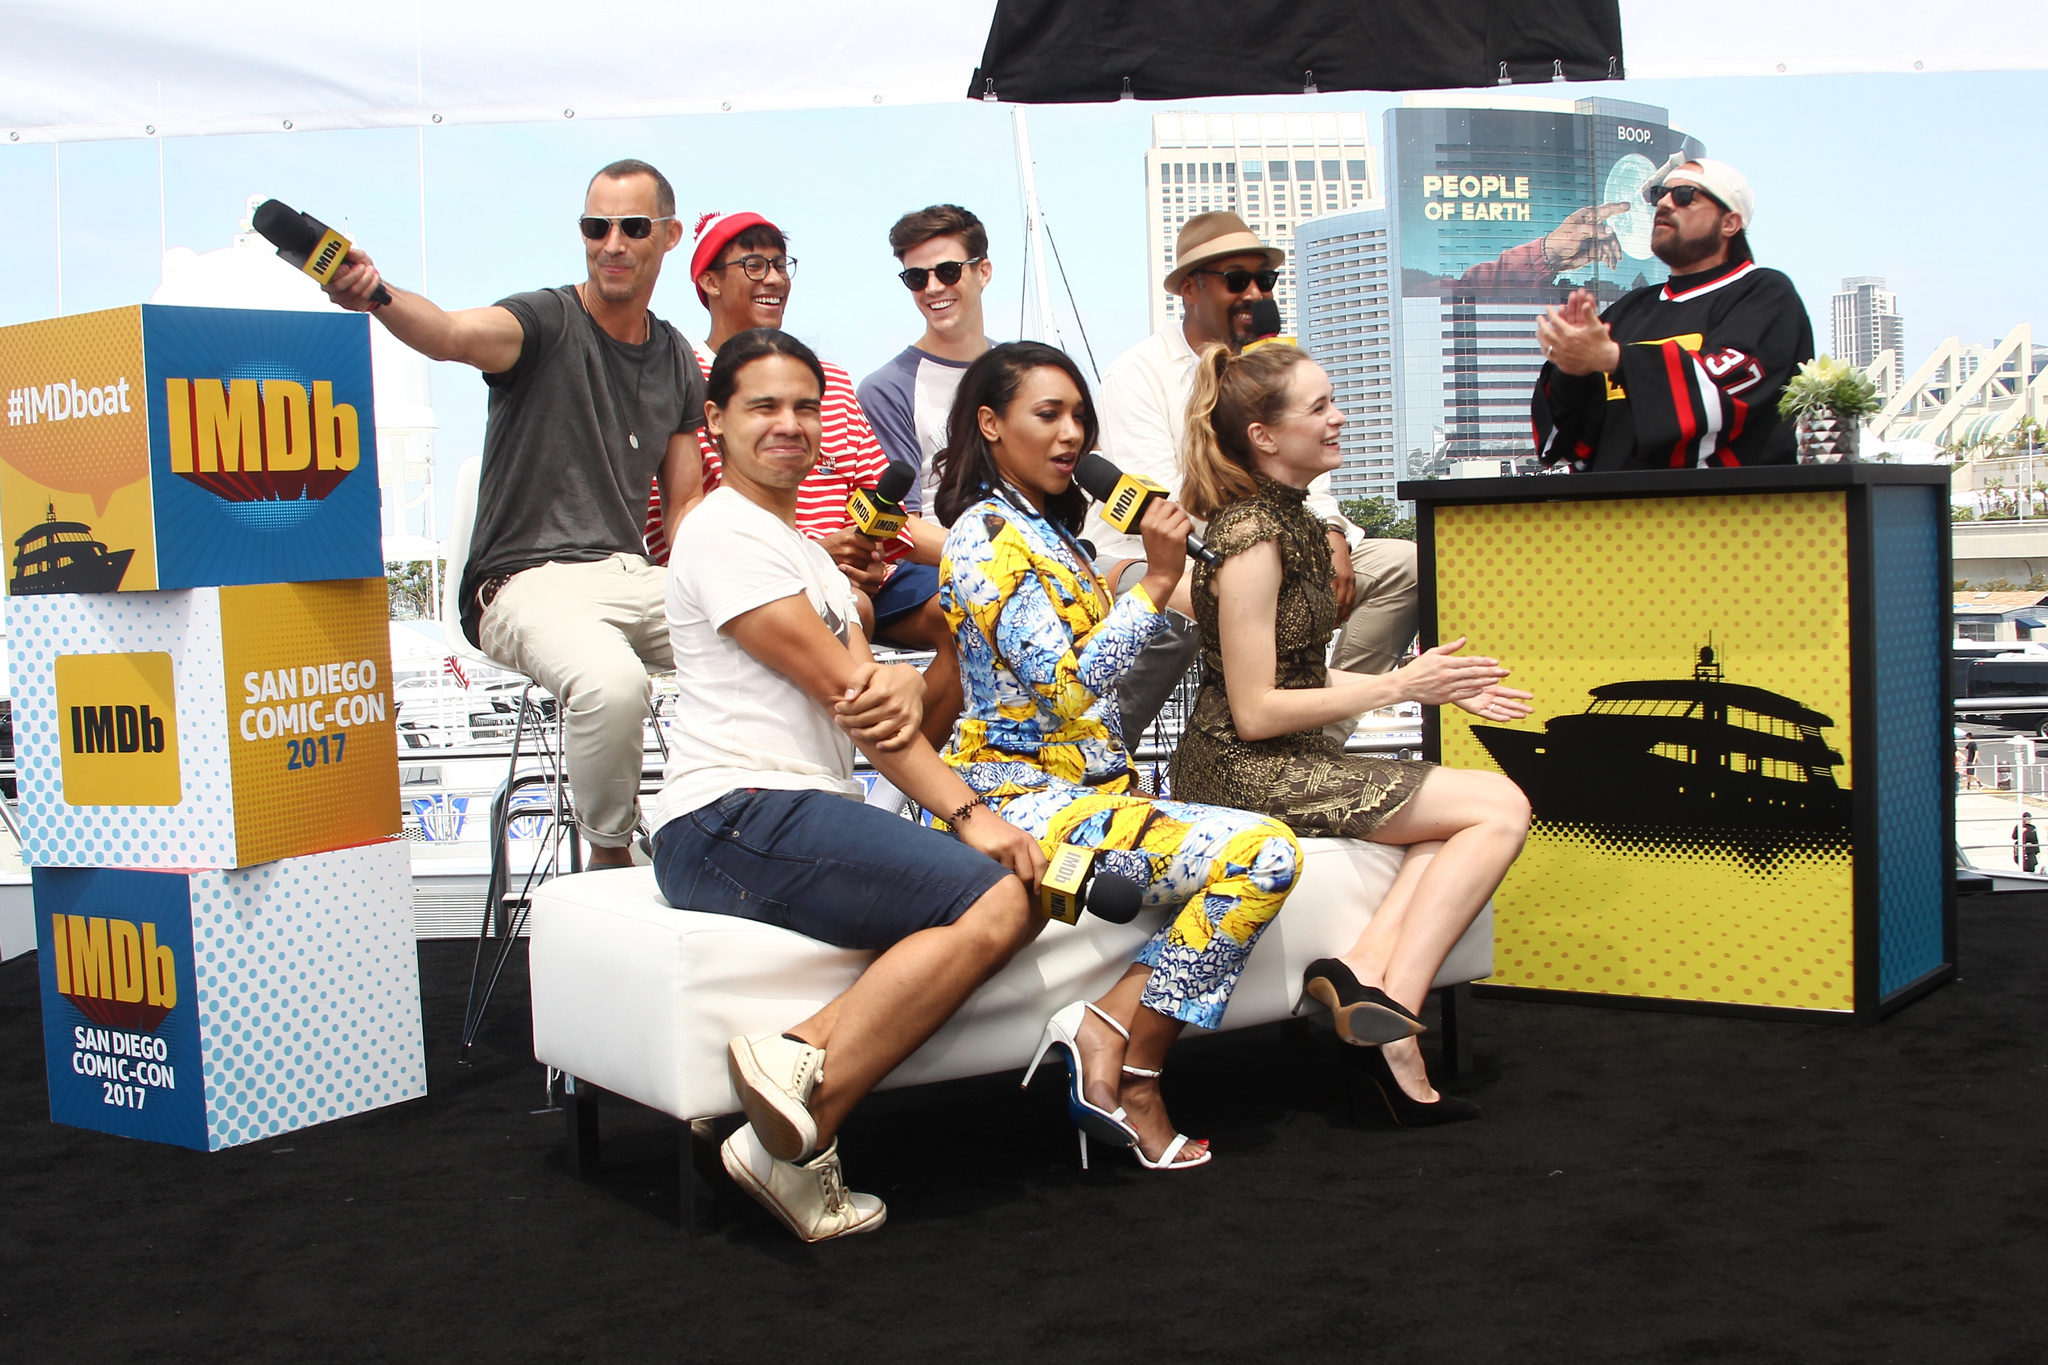 Kevin Smith, Tom Cavanagh, Danielle Panabaker, Jesse Martin, Grant Gustin, Candice Patton, Keiynan Lonsdale és Carlos Valdez